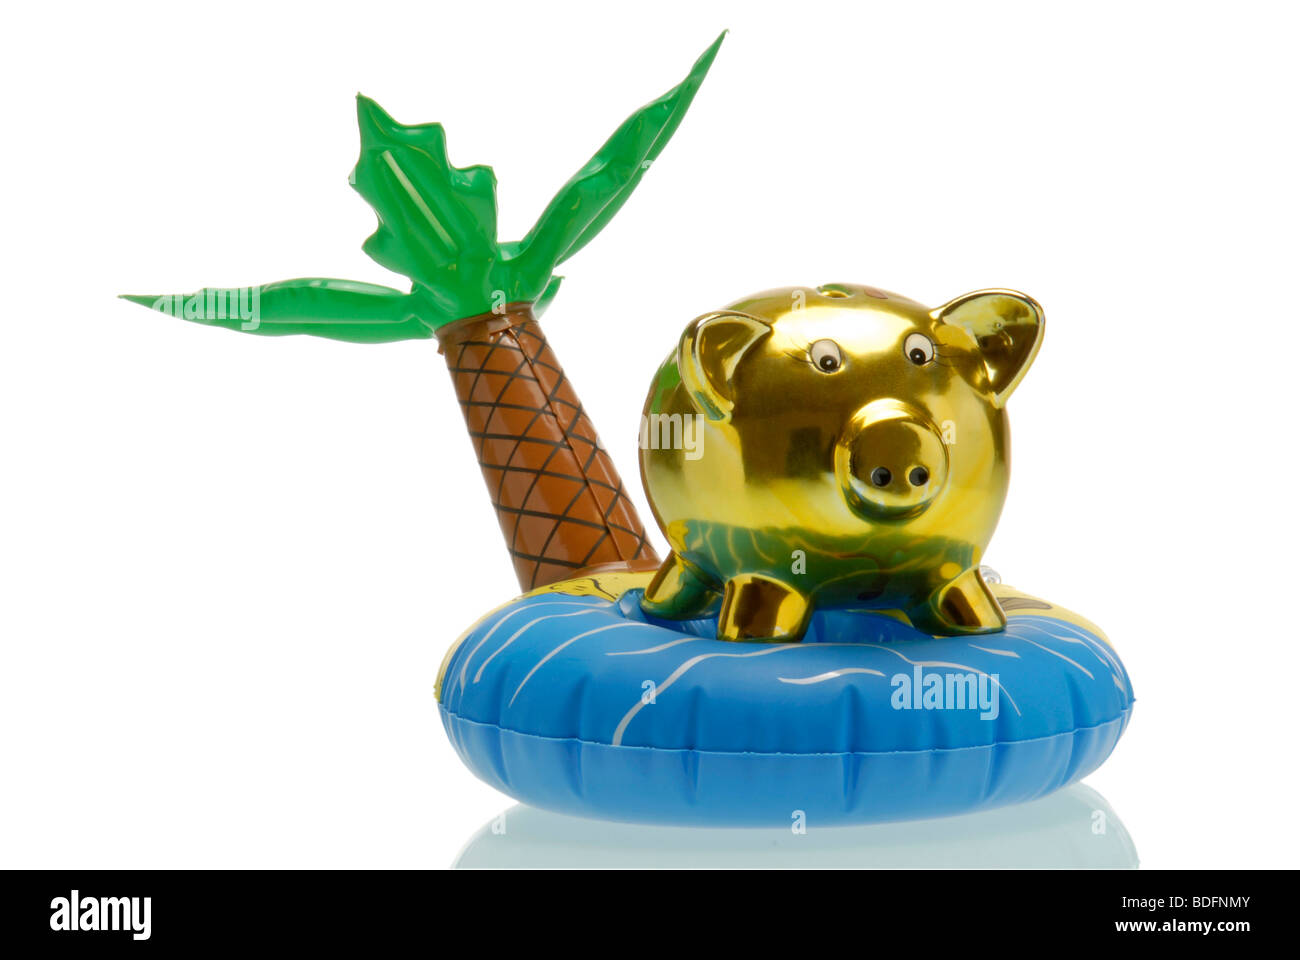 Piggybank on plastic island, symbolic picture for tax haven - Stock Image